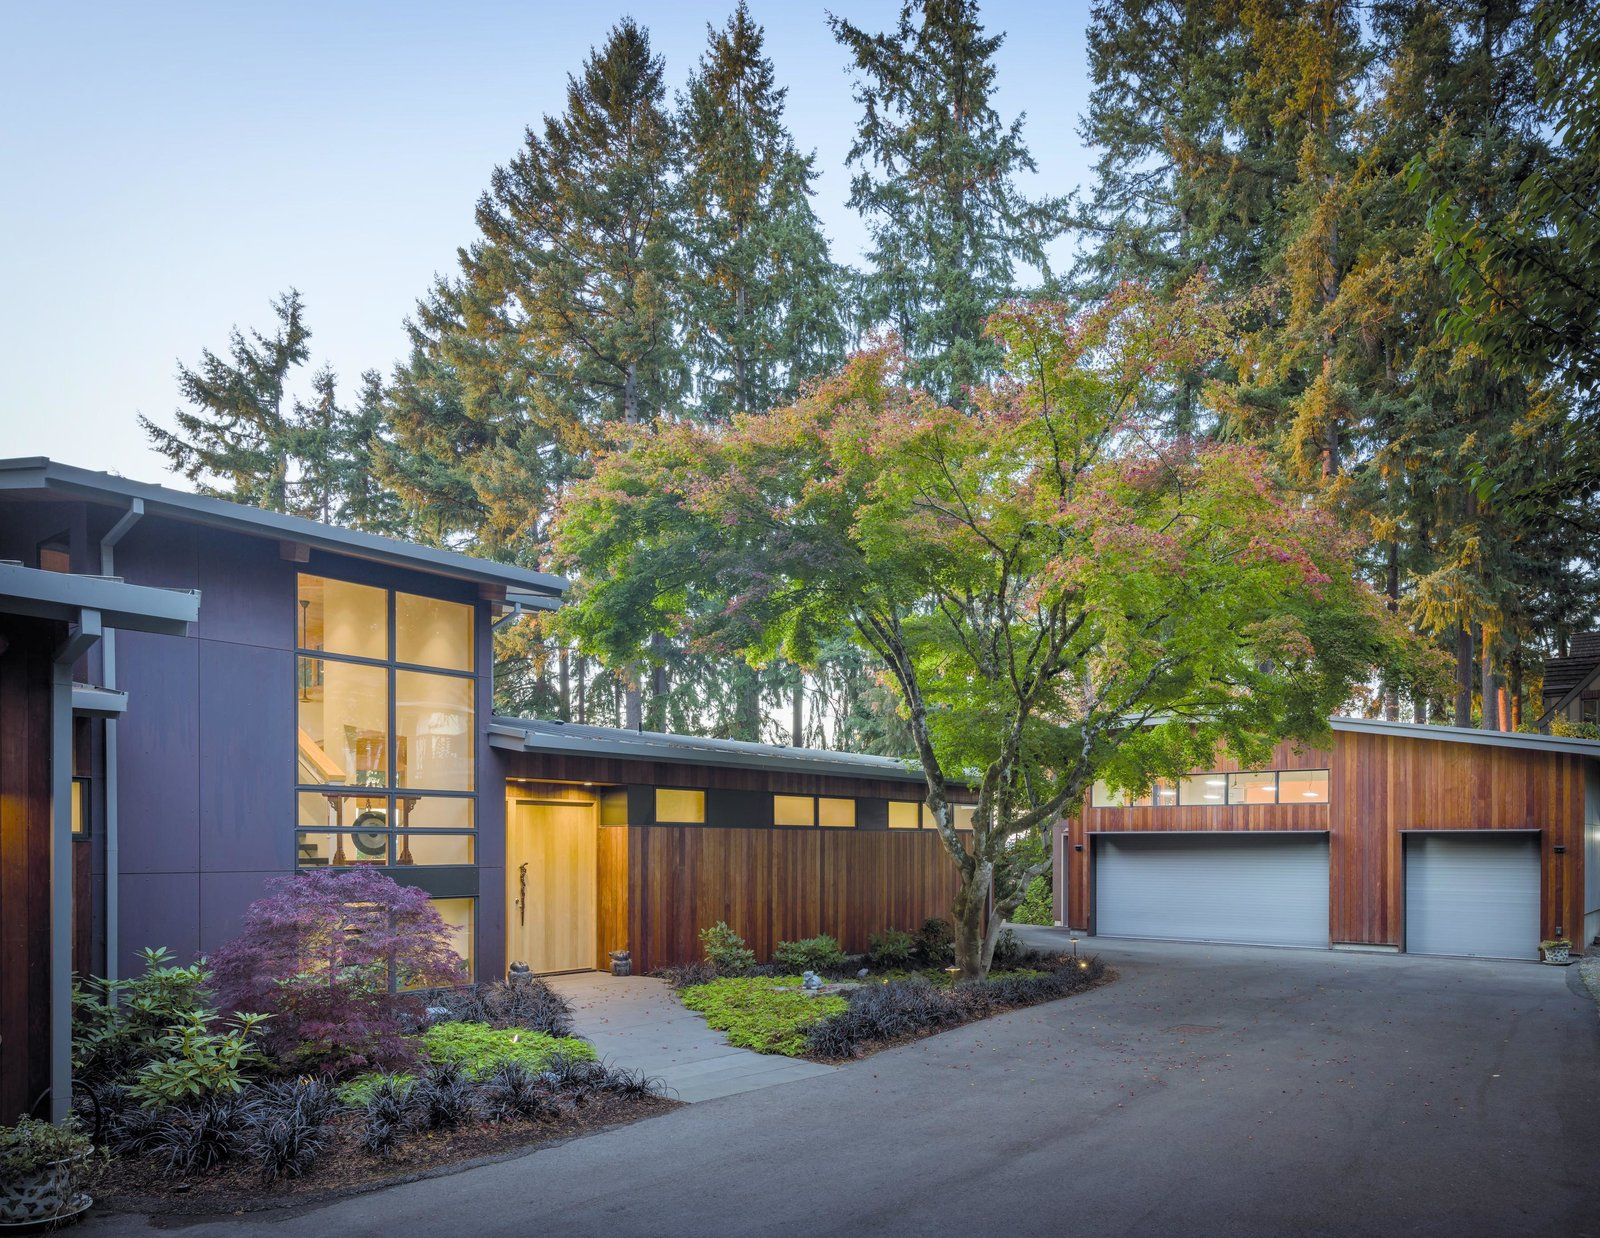 Exterior, Wood Siding Material, Concrete Siding Material, Curved RoofLine, and House Building Type Wave House   Olson Kundig  Wave House by Olson Kundig